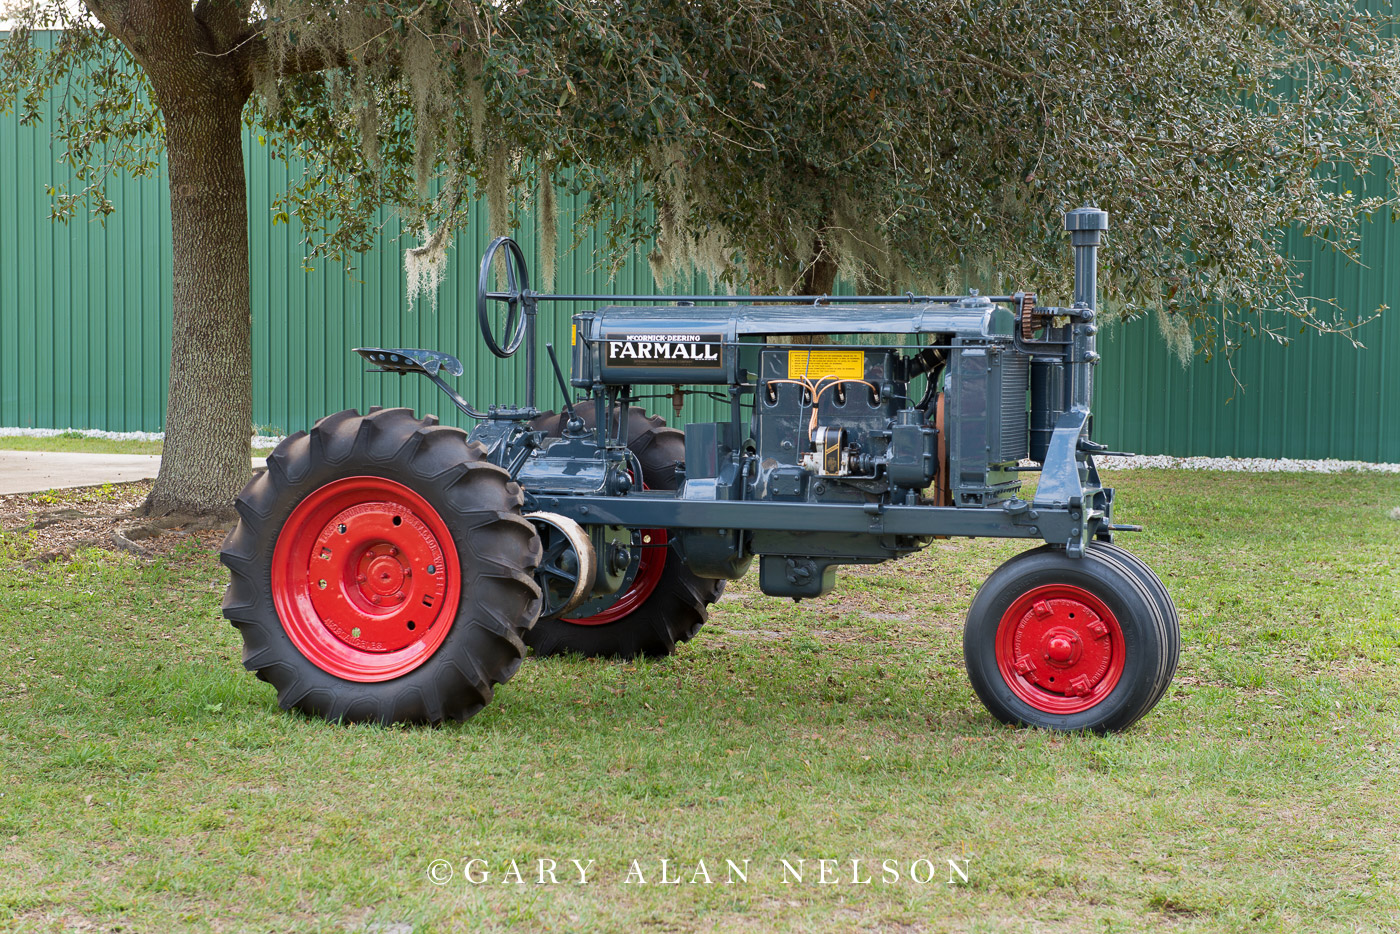 Farmall Regular, 1924-1932